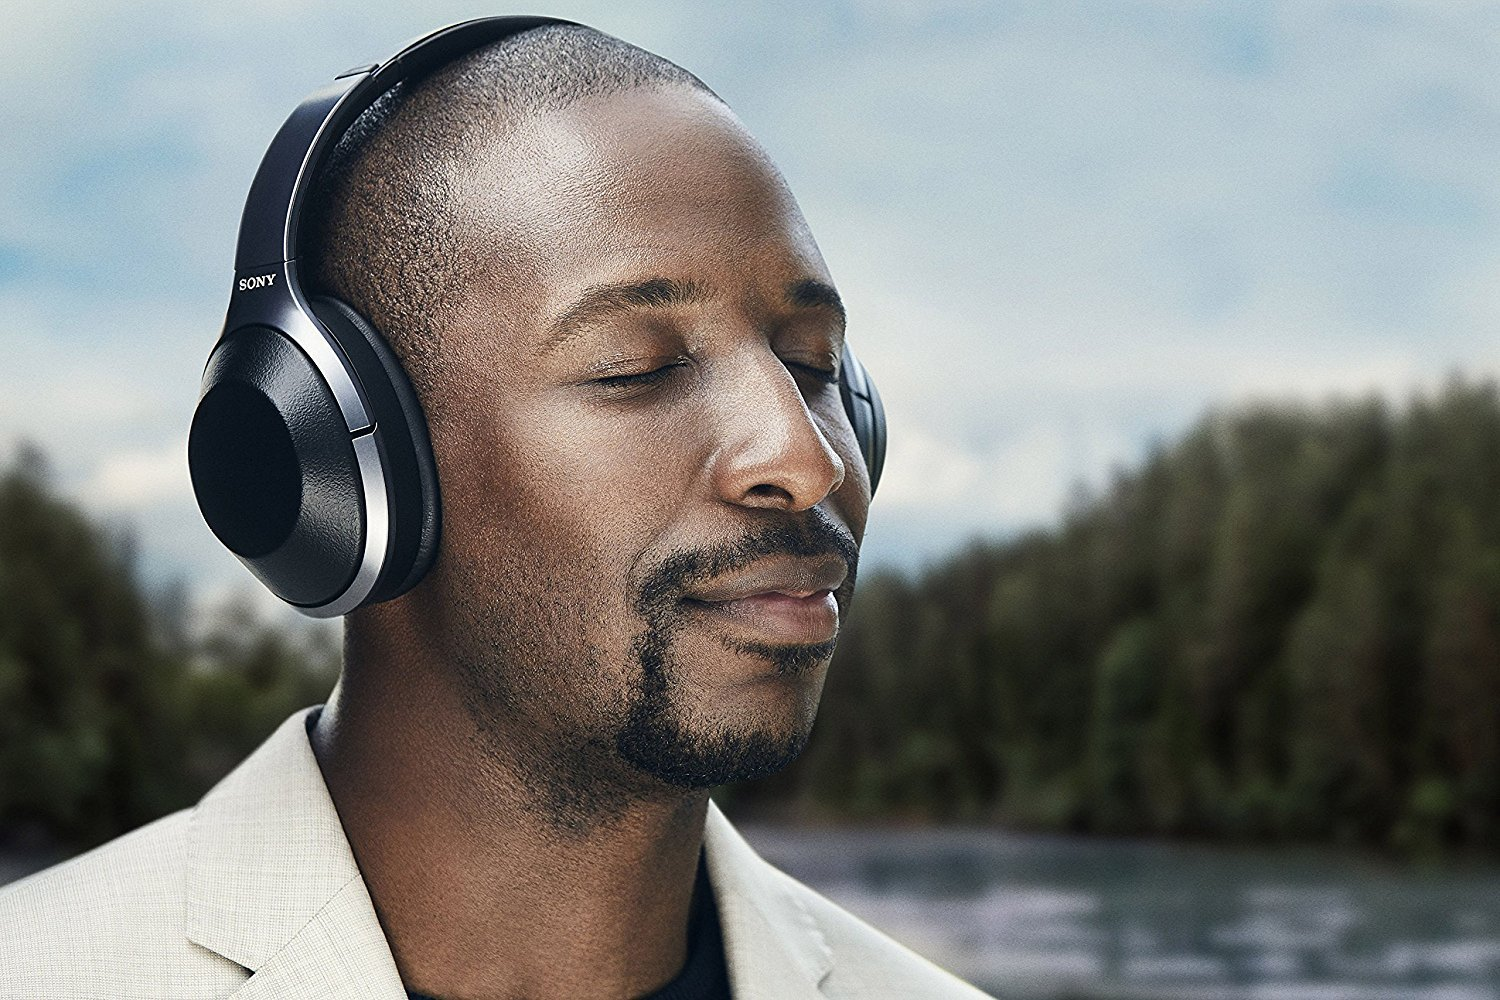 OMG: The Sony noise cancelling headphones people go crazy for are still down to their Prime Day price